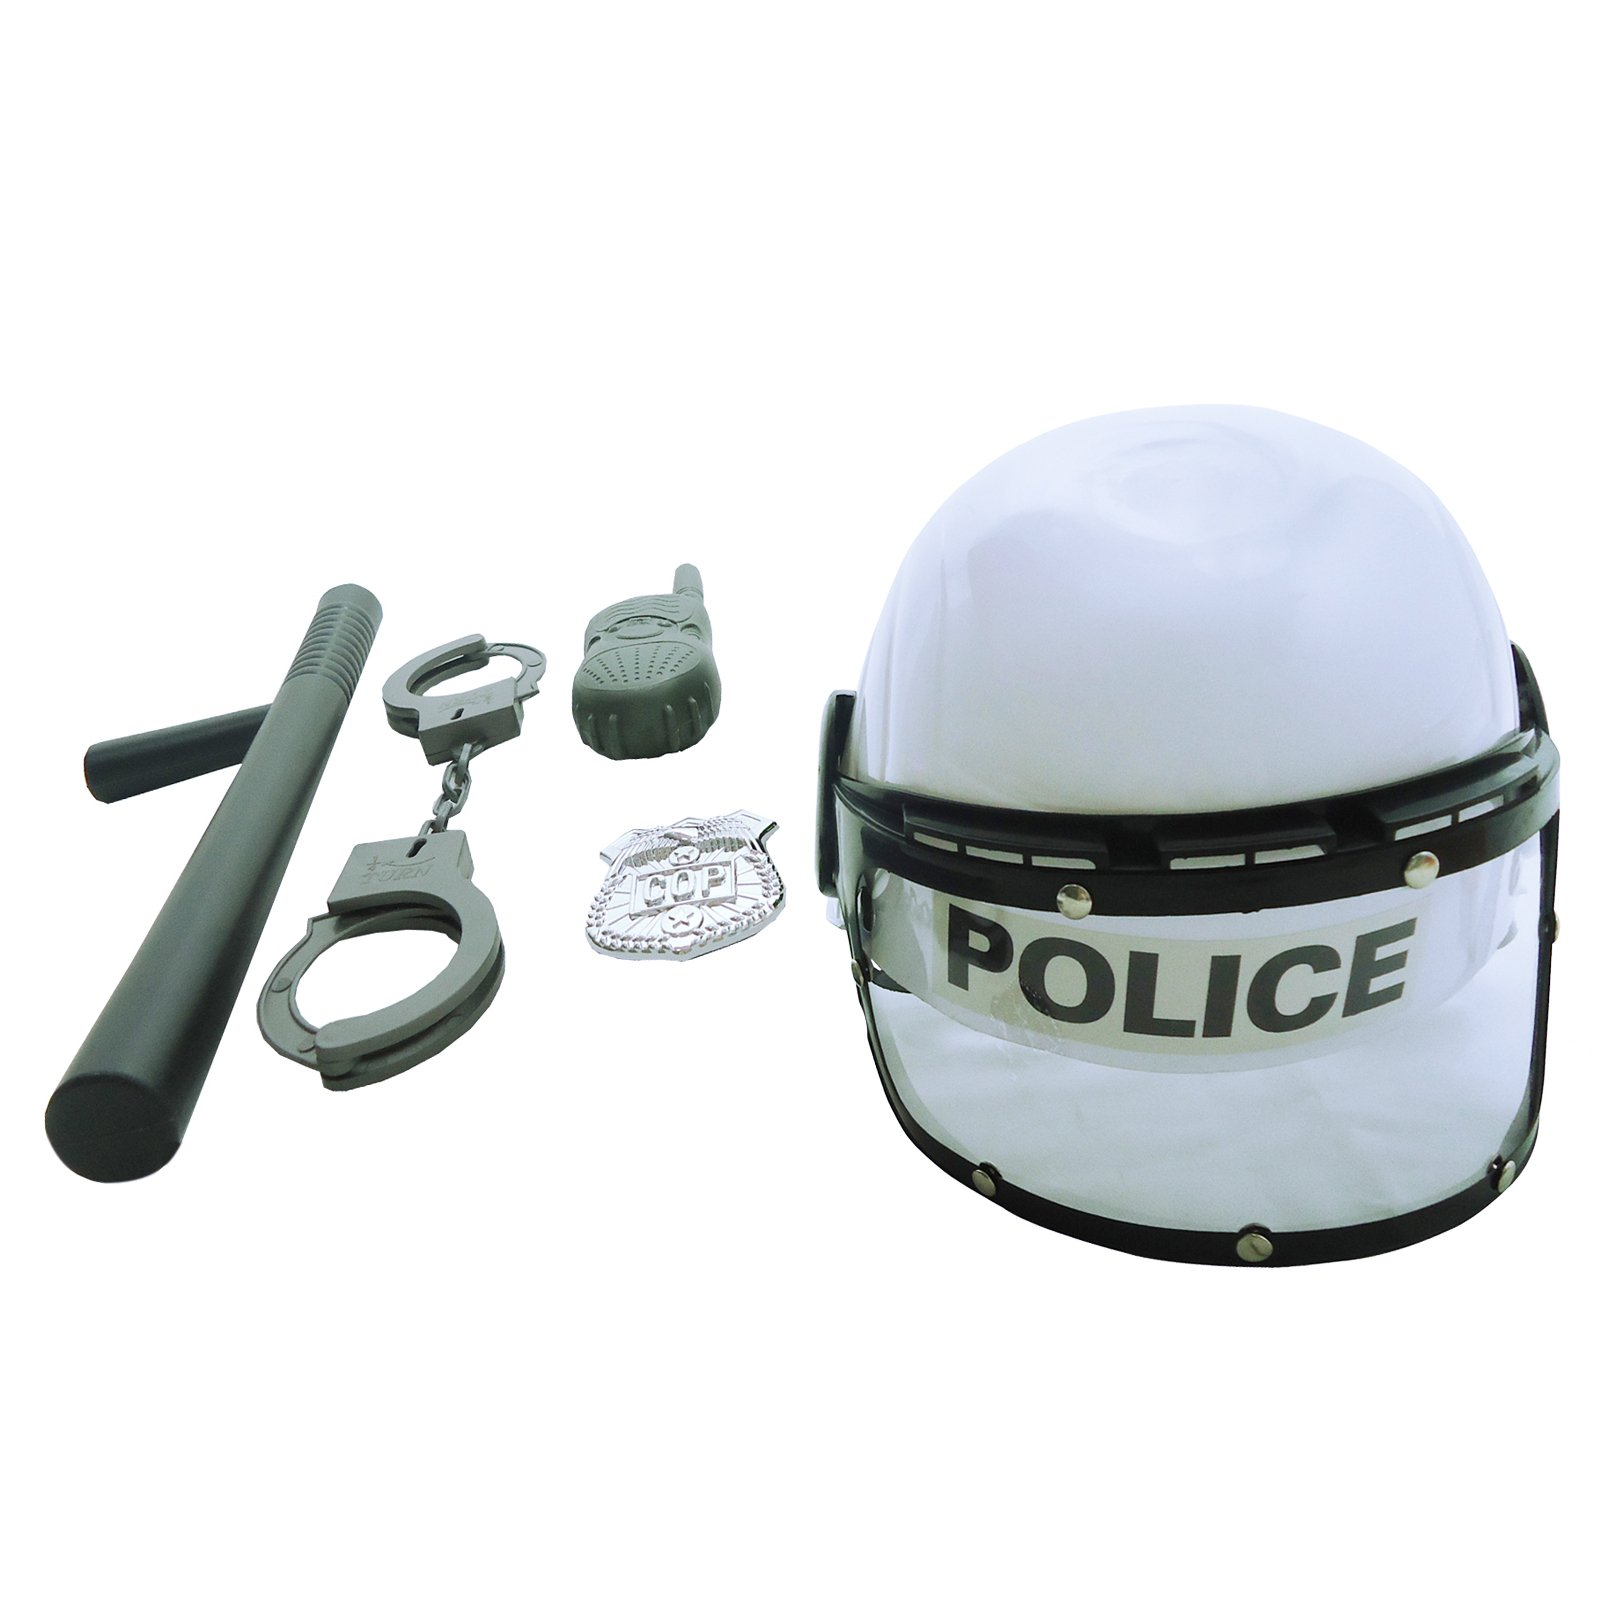 Combat Police Helmet Dress Up Play Set with Accessories